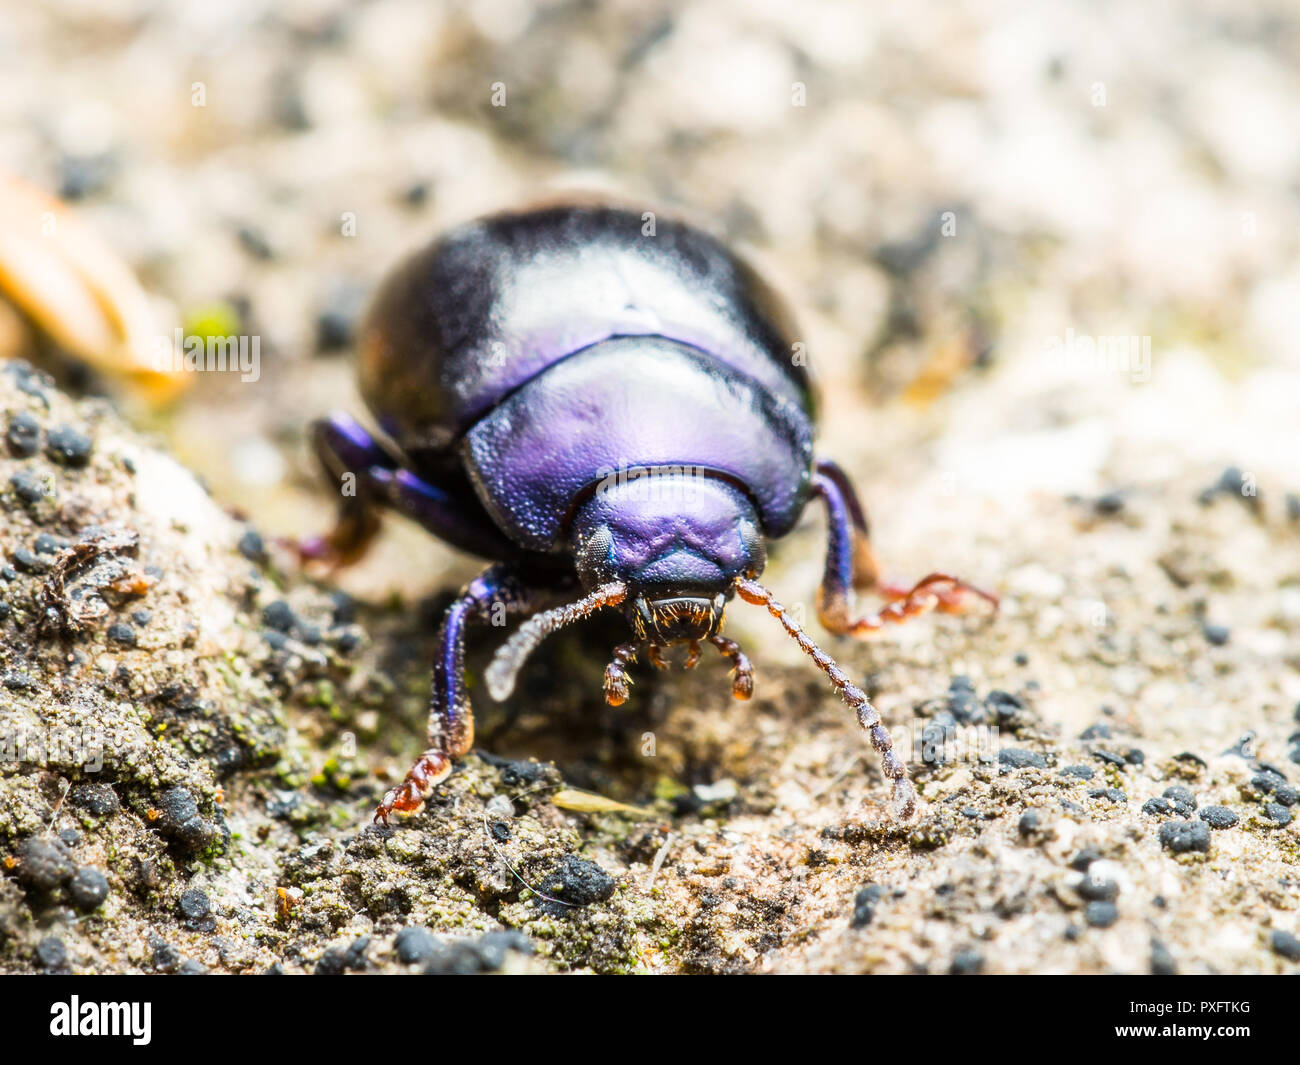 Chrysolina Coerulans Blue Mint Leaf Beetle Insect Macro - Stock Image